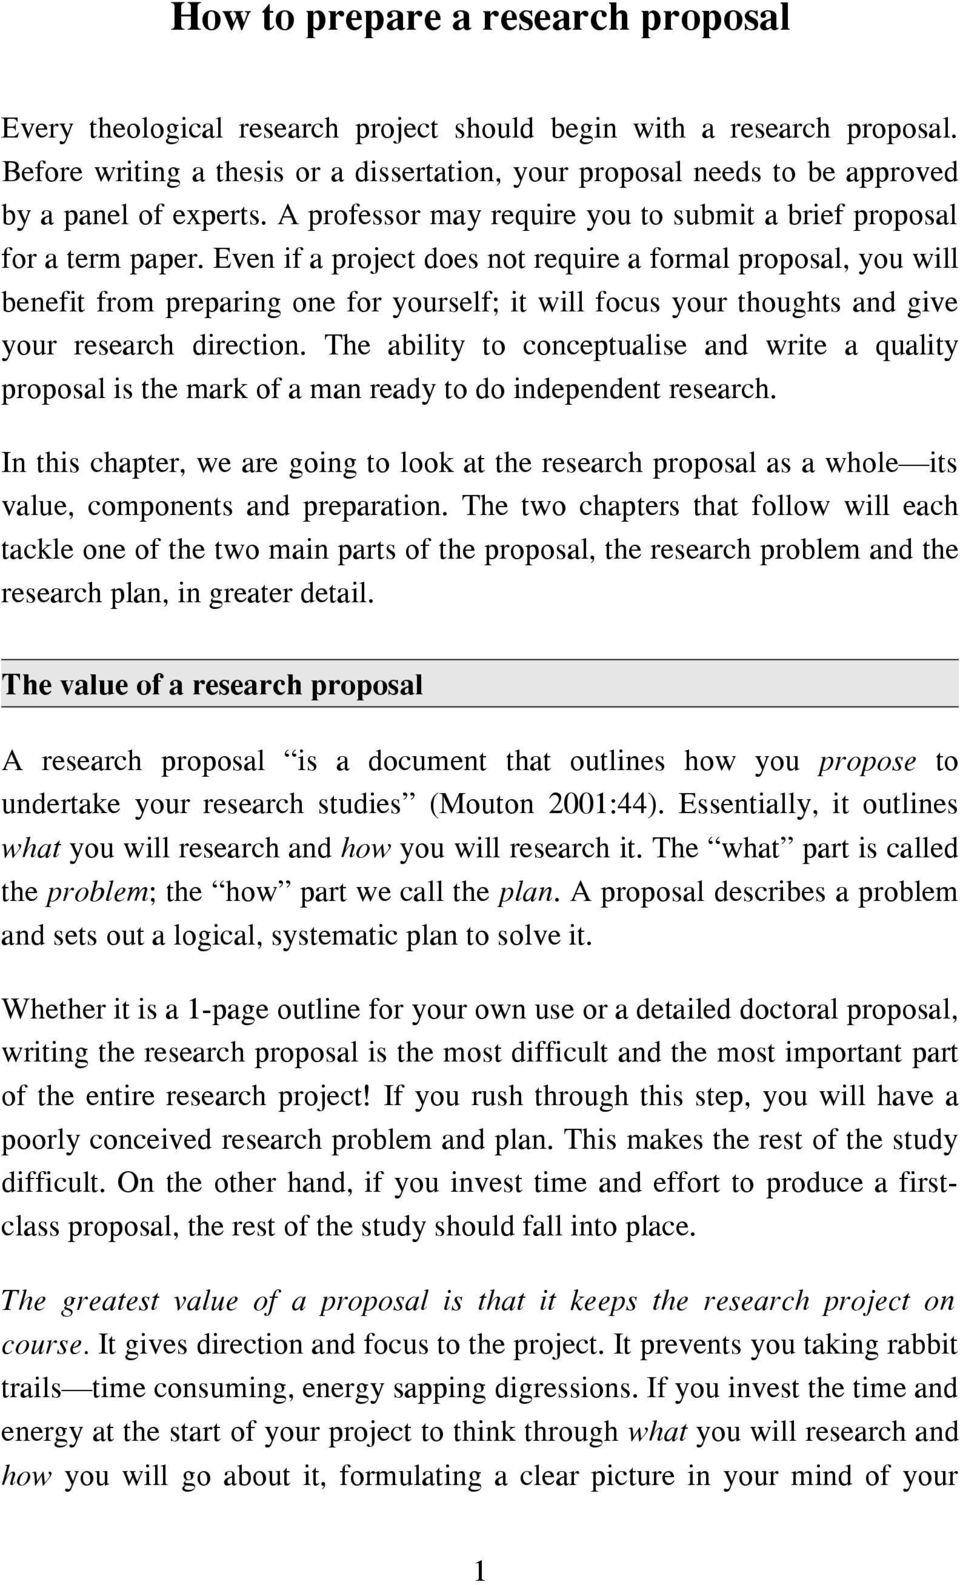 Even if a project does not require a formal proposal, you will benefit from preparing one for yourself; it will focus your thoughts and give your research direction.